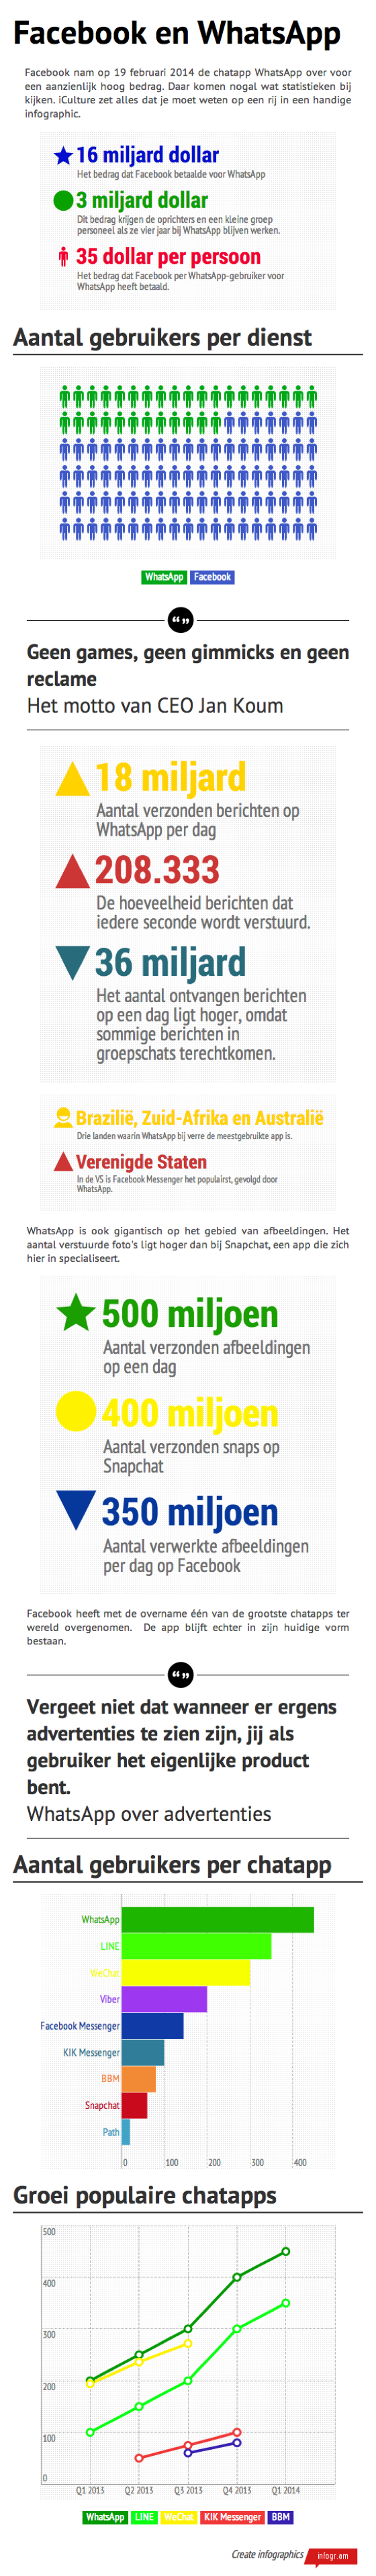 Infographic Facebook WhatsApp